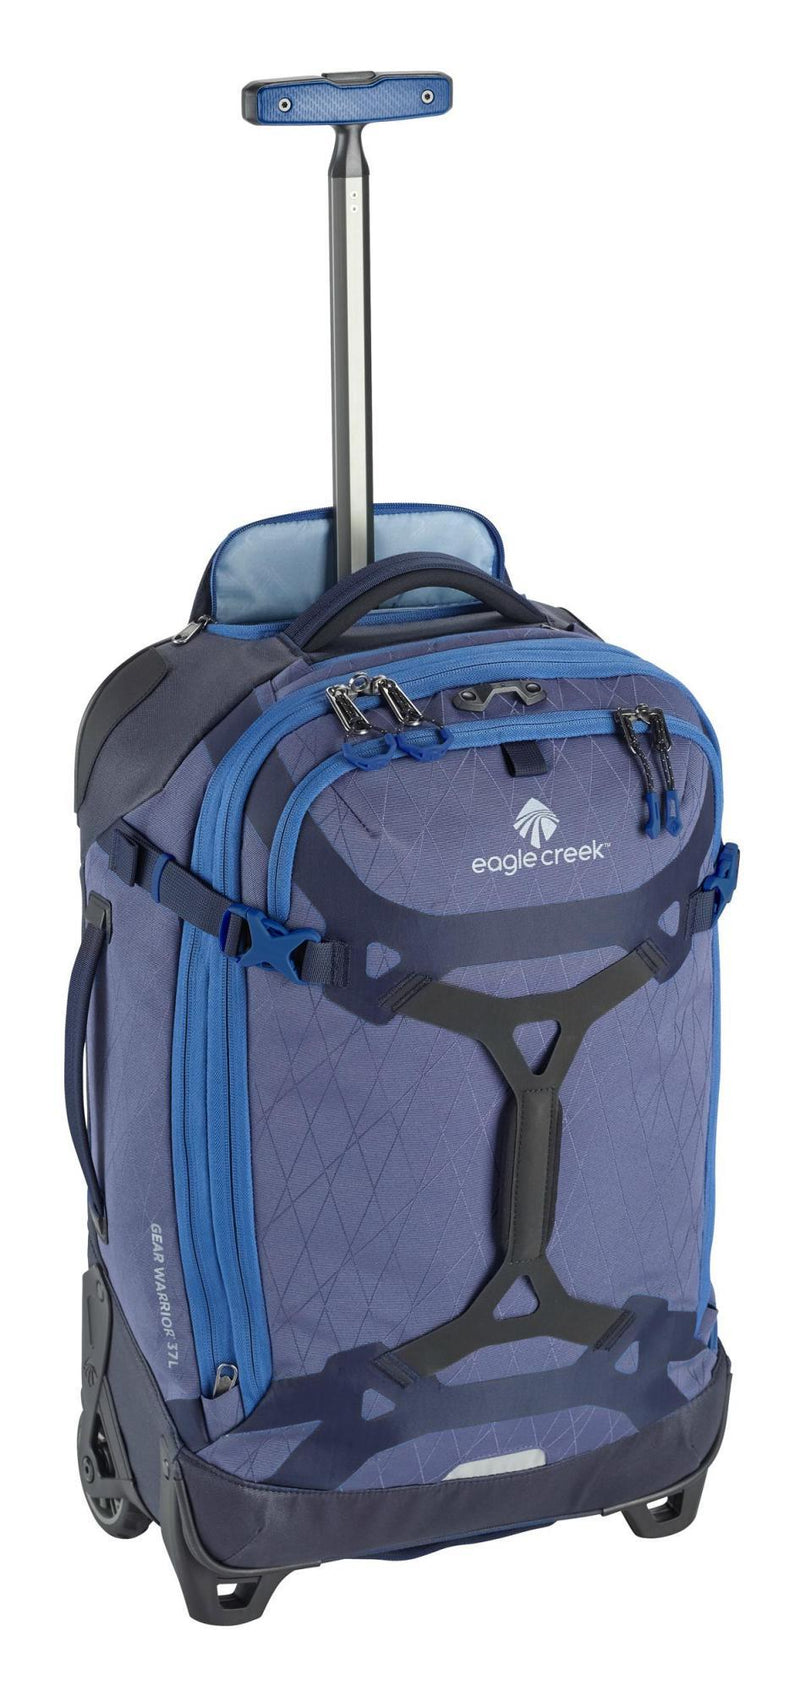 Eagle Creek Gear Warrior Wheeled Duffel International Carry On-Luggage Pros